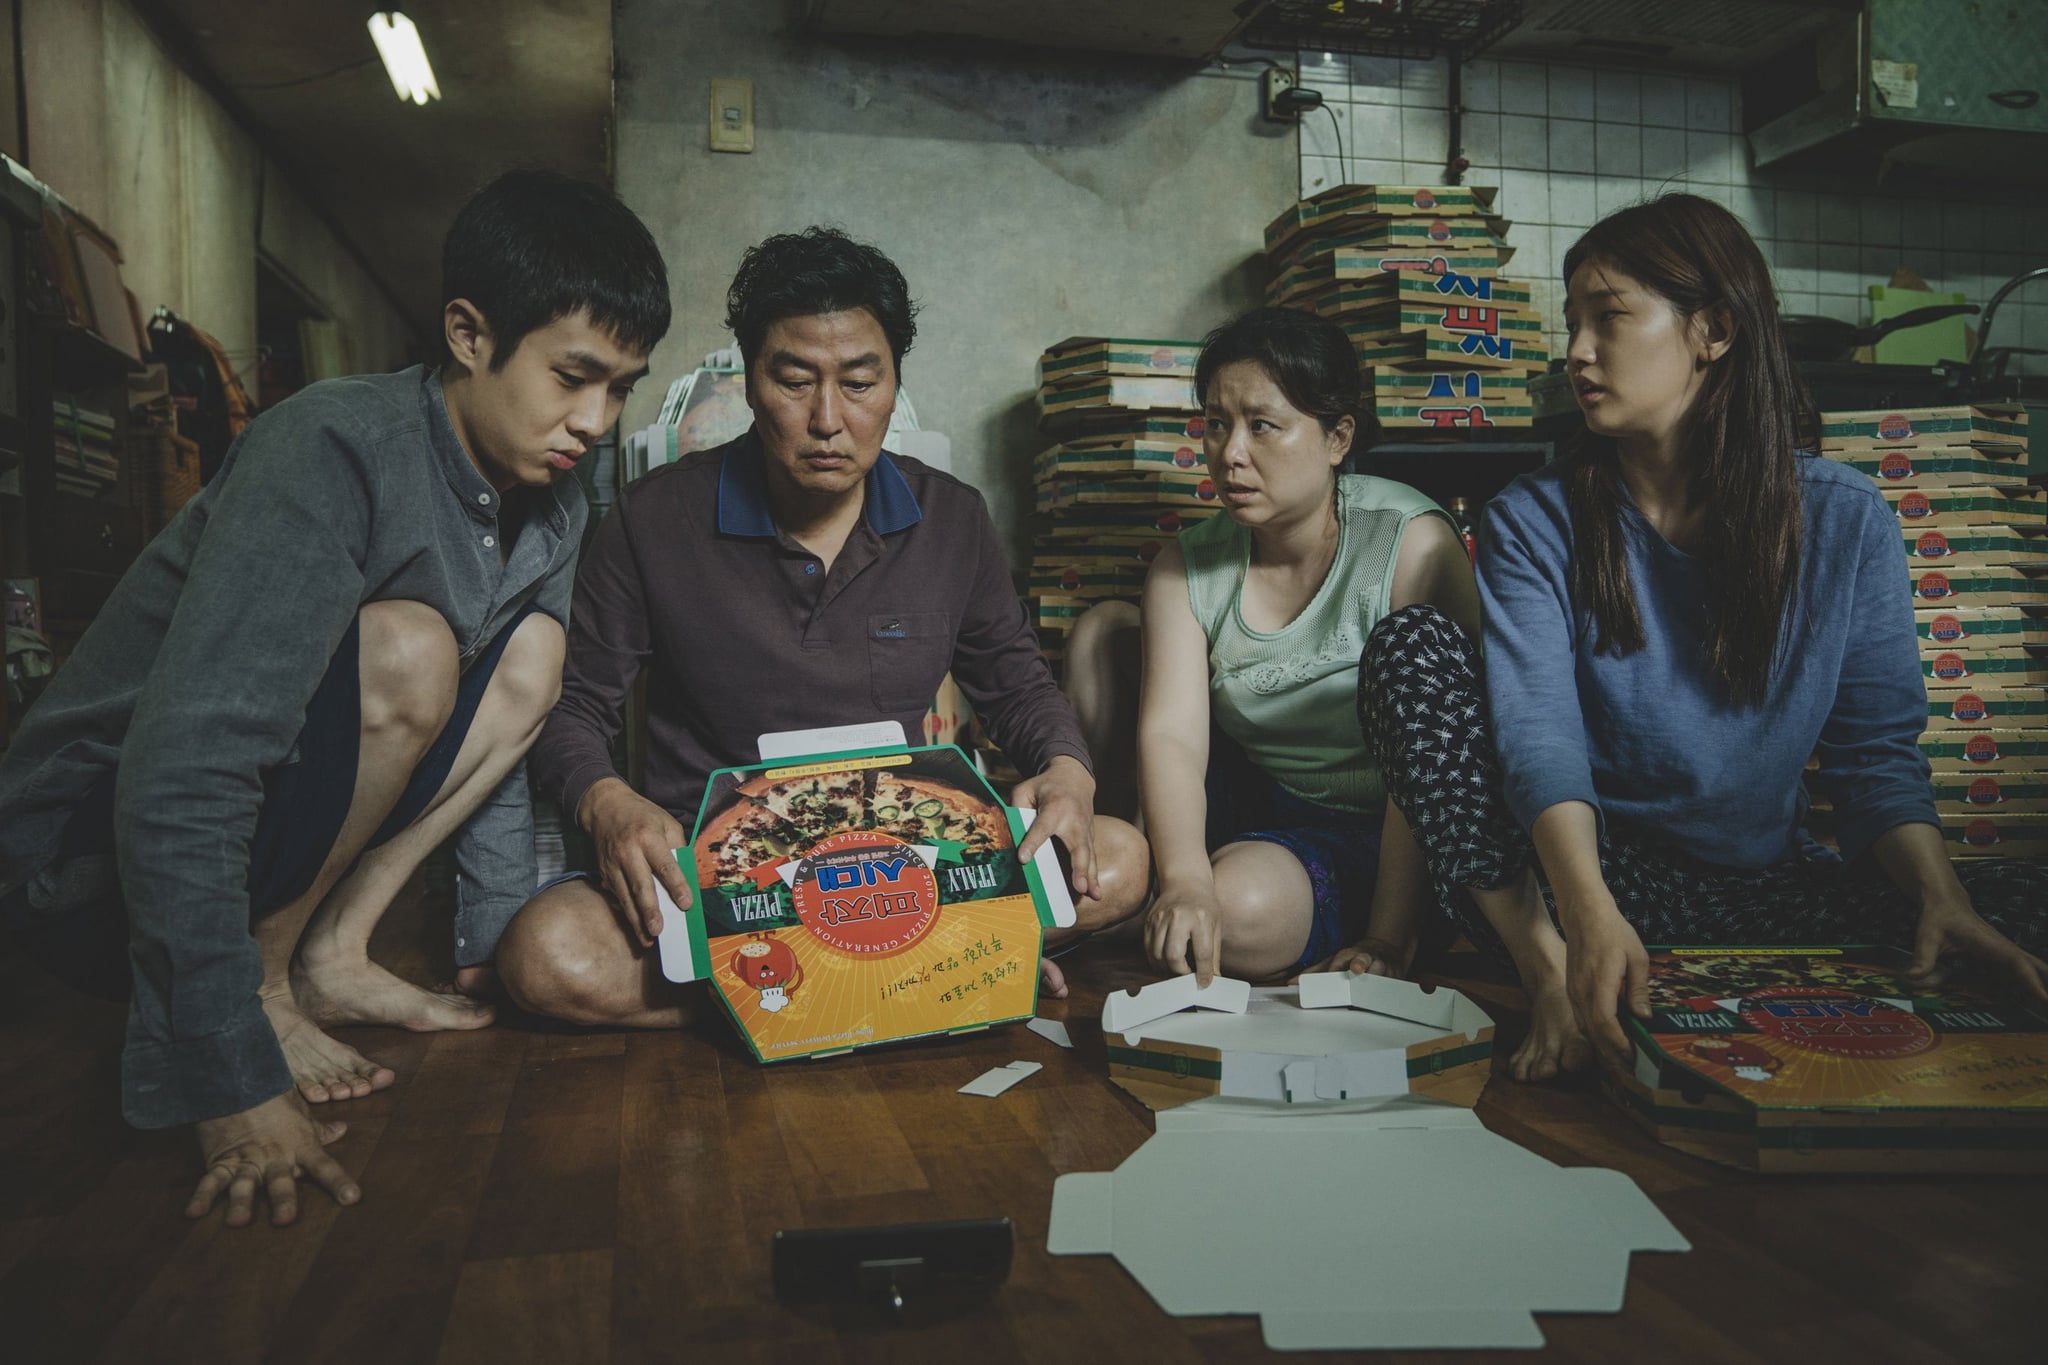 PARASITE, from left: CHOI Woo-sik, SONG Kang-ho, JANG Hye-jin, PARK So-dam, 2019.  Neon / courtesy Everett Collection